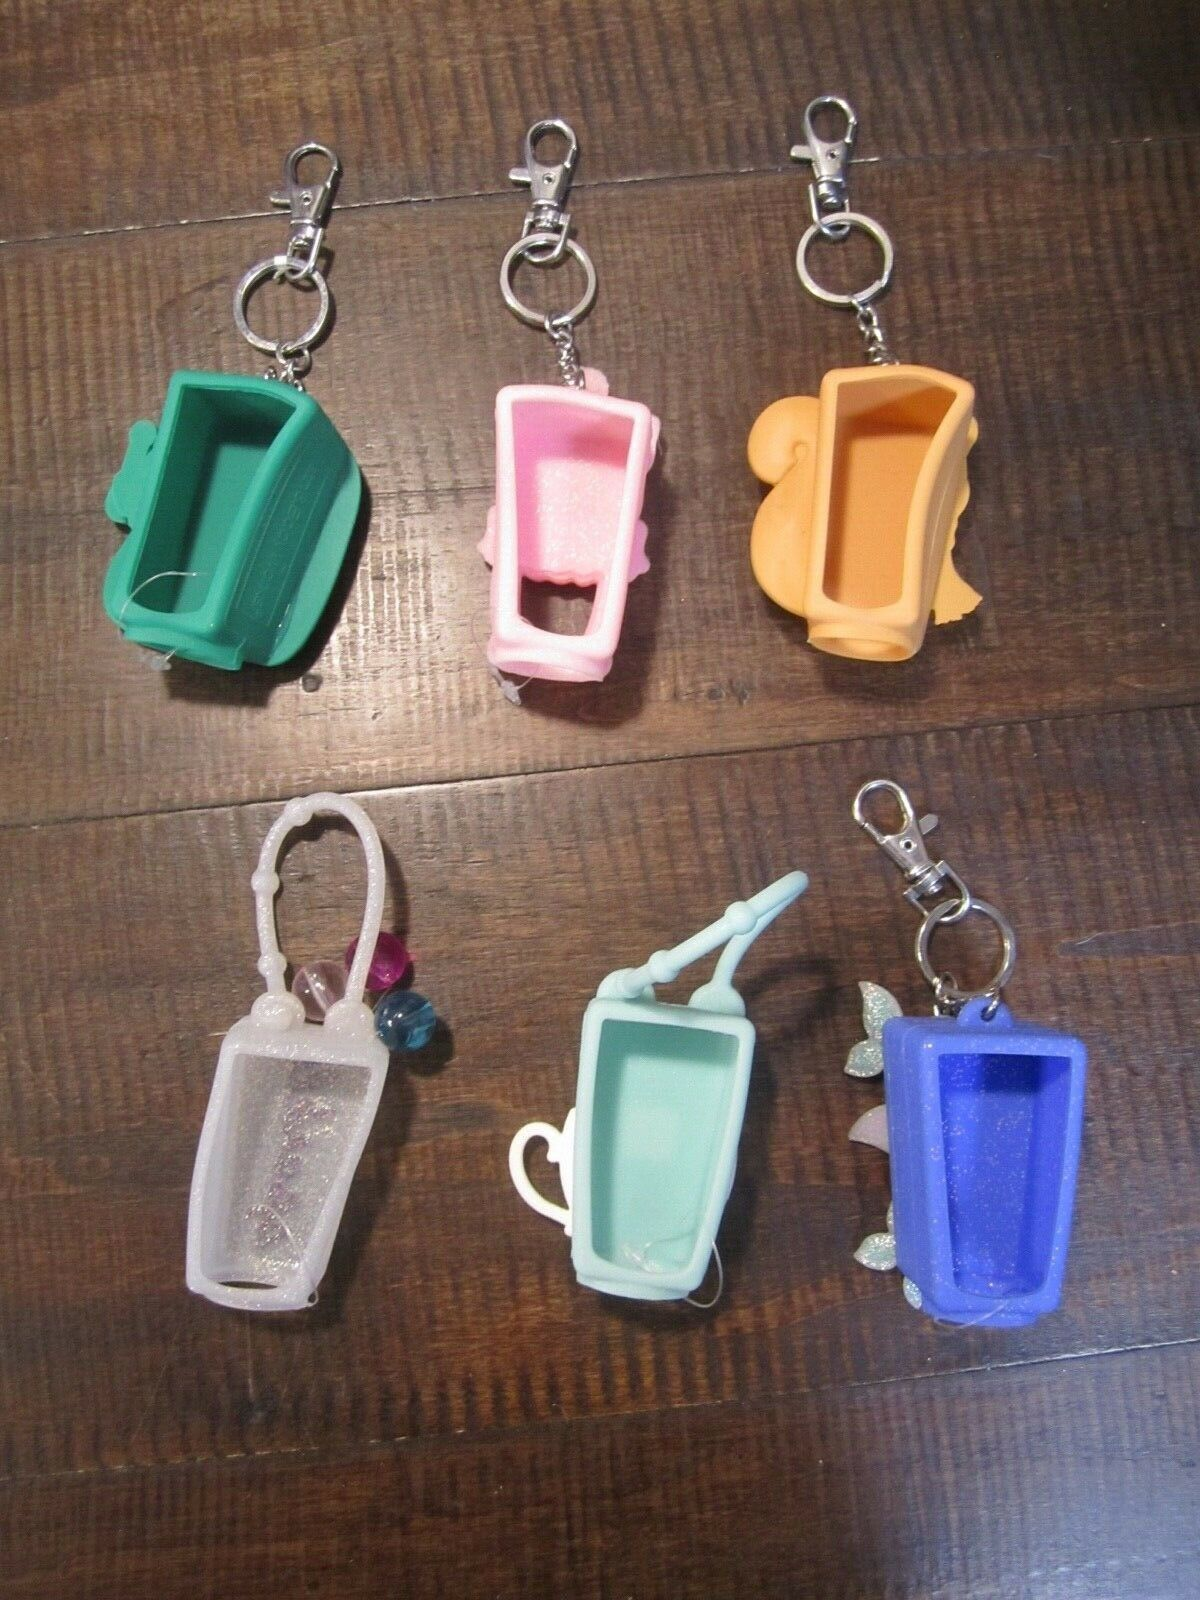 Bath and Body works lot of holders for hand sanitizer some light up fox turtle 6